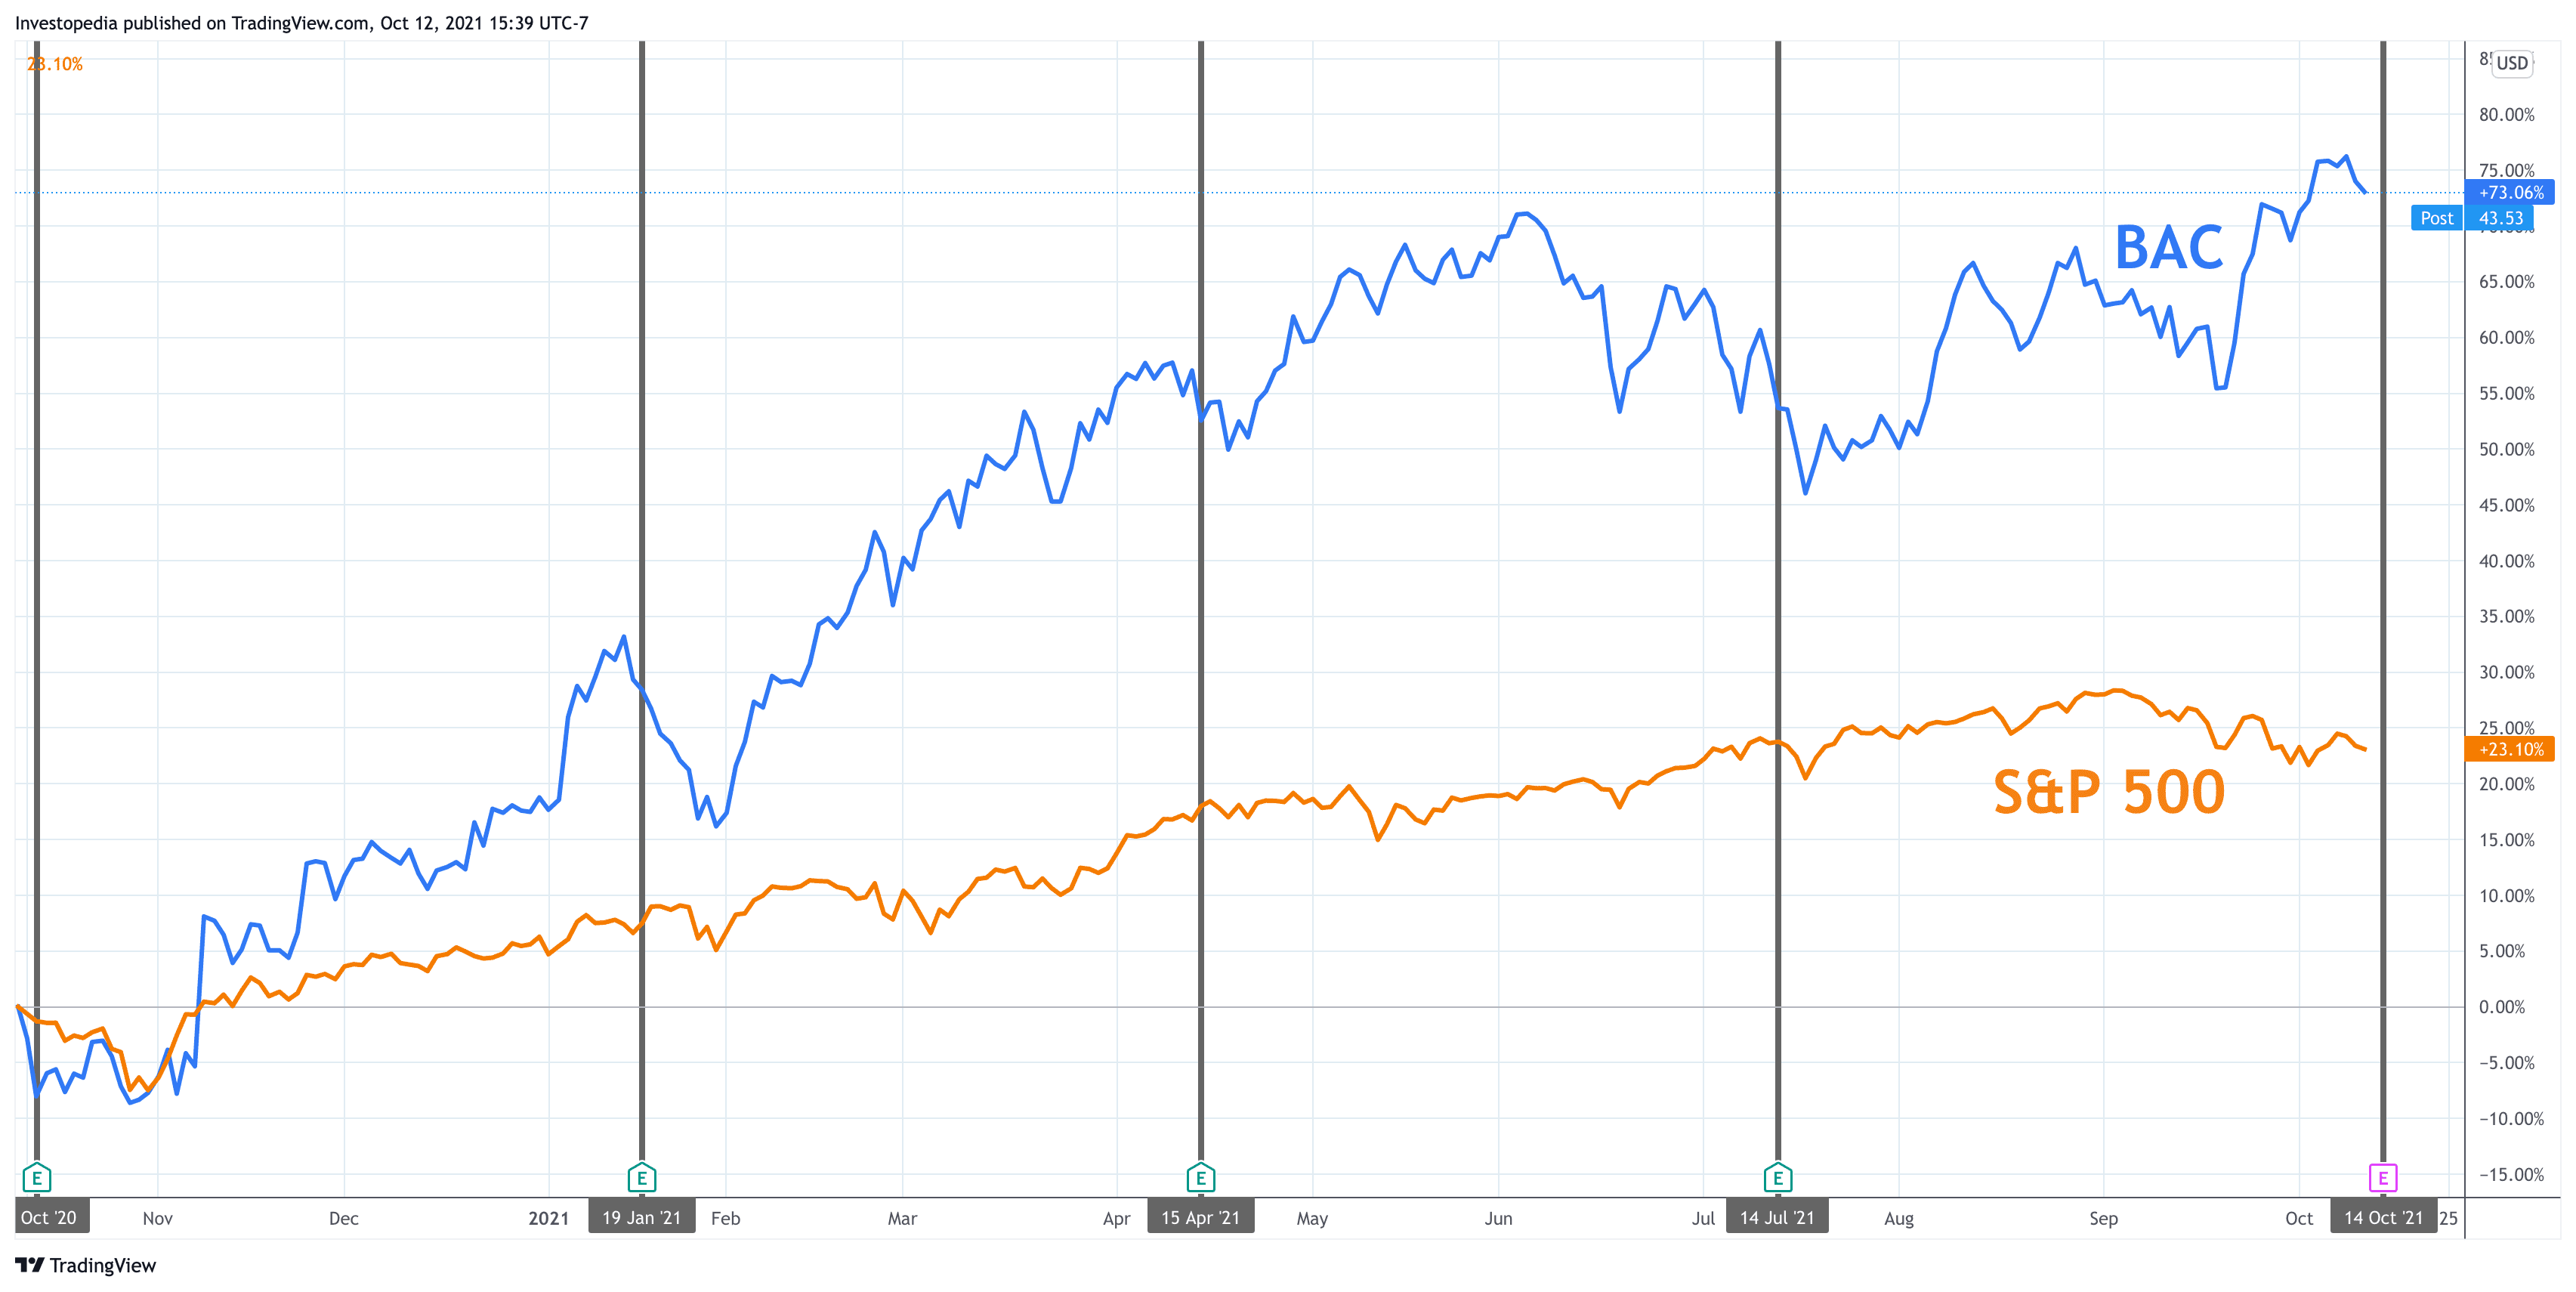 One Year Total Return for S&P 500 and Bank of America